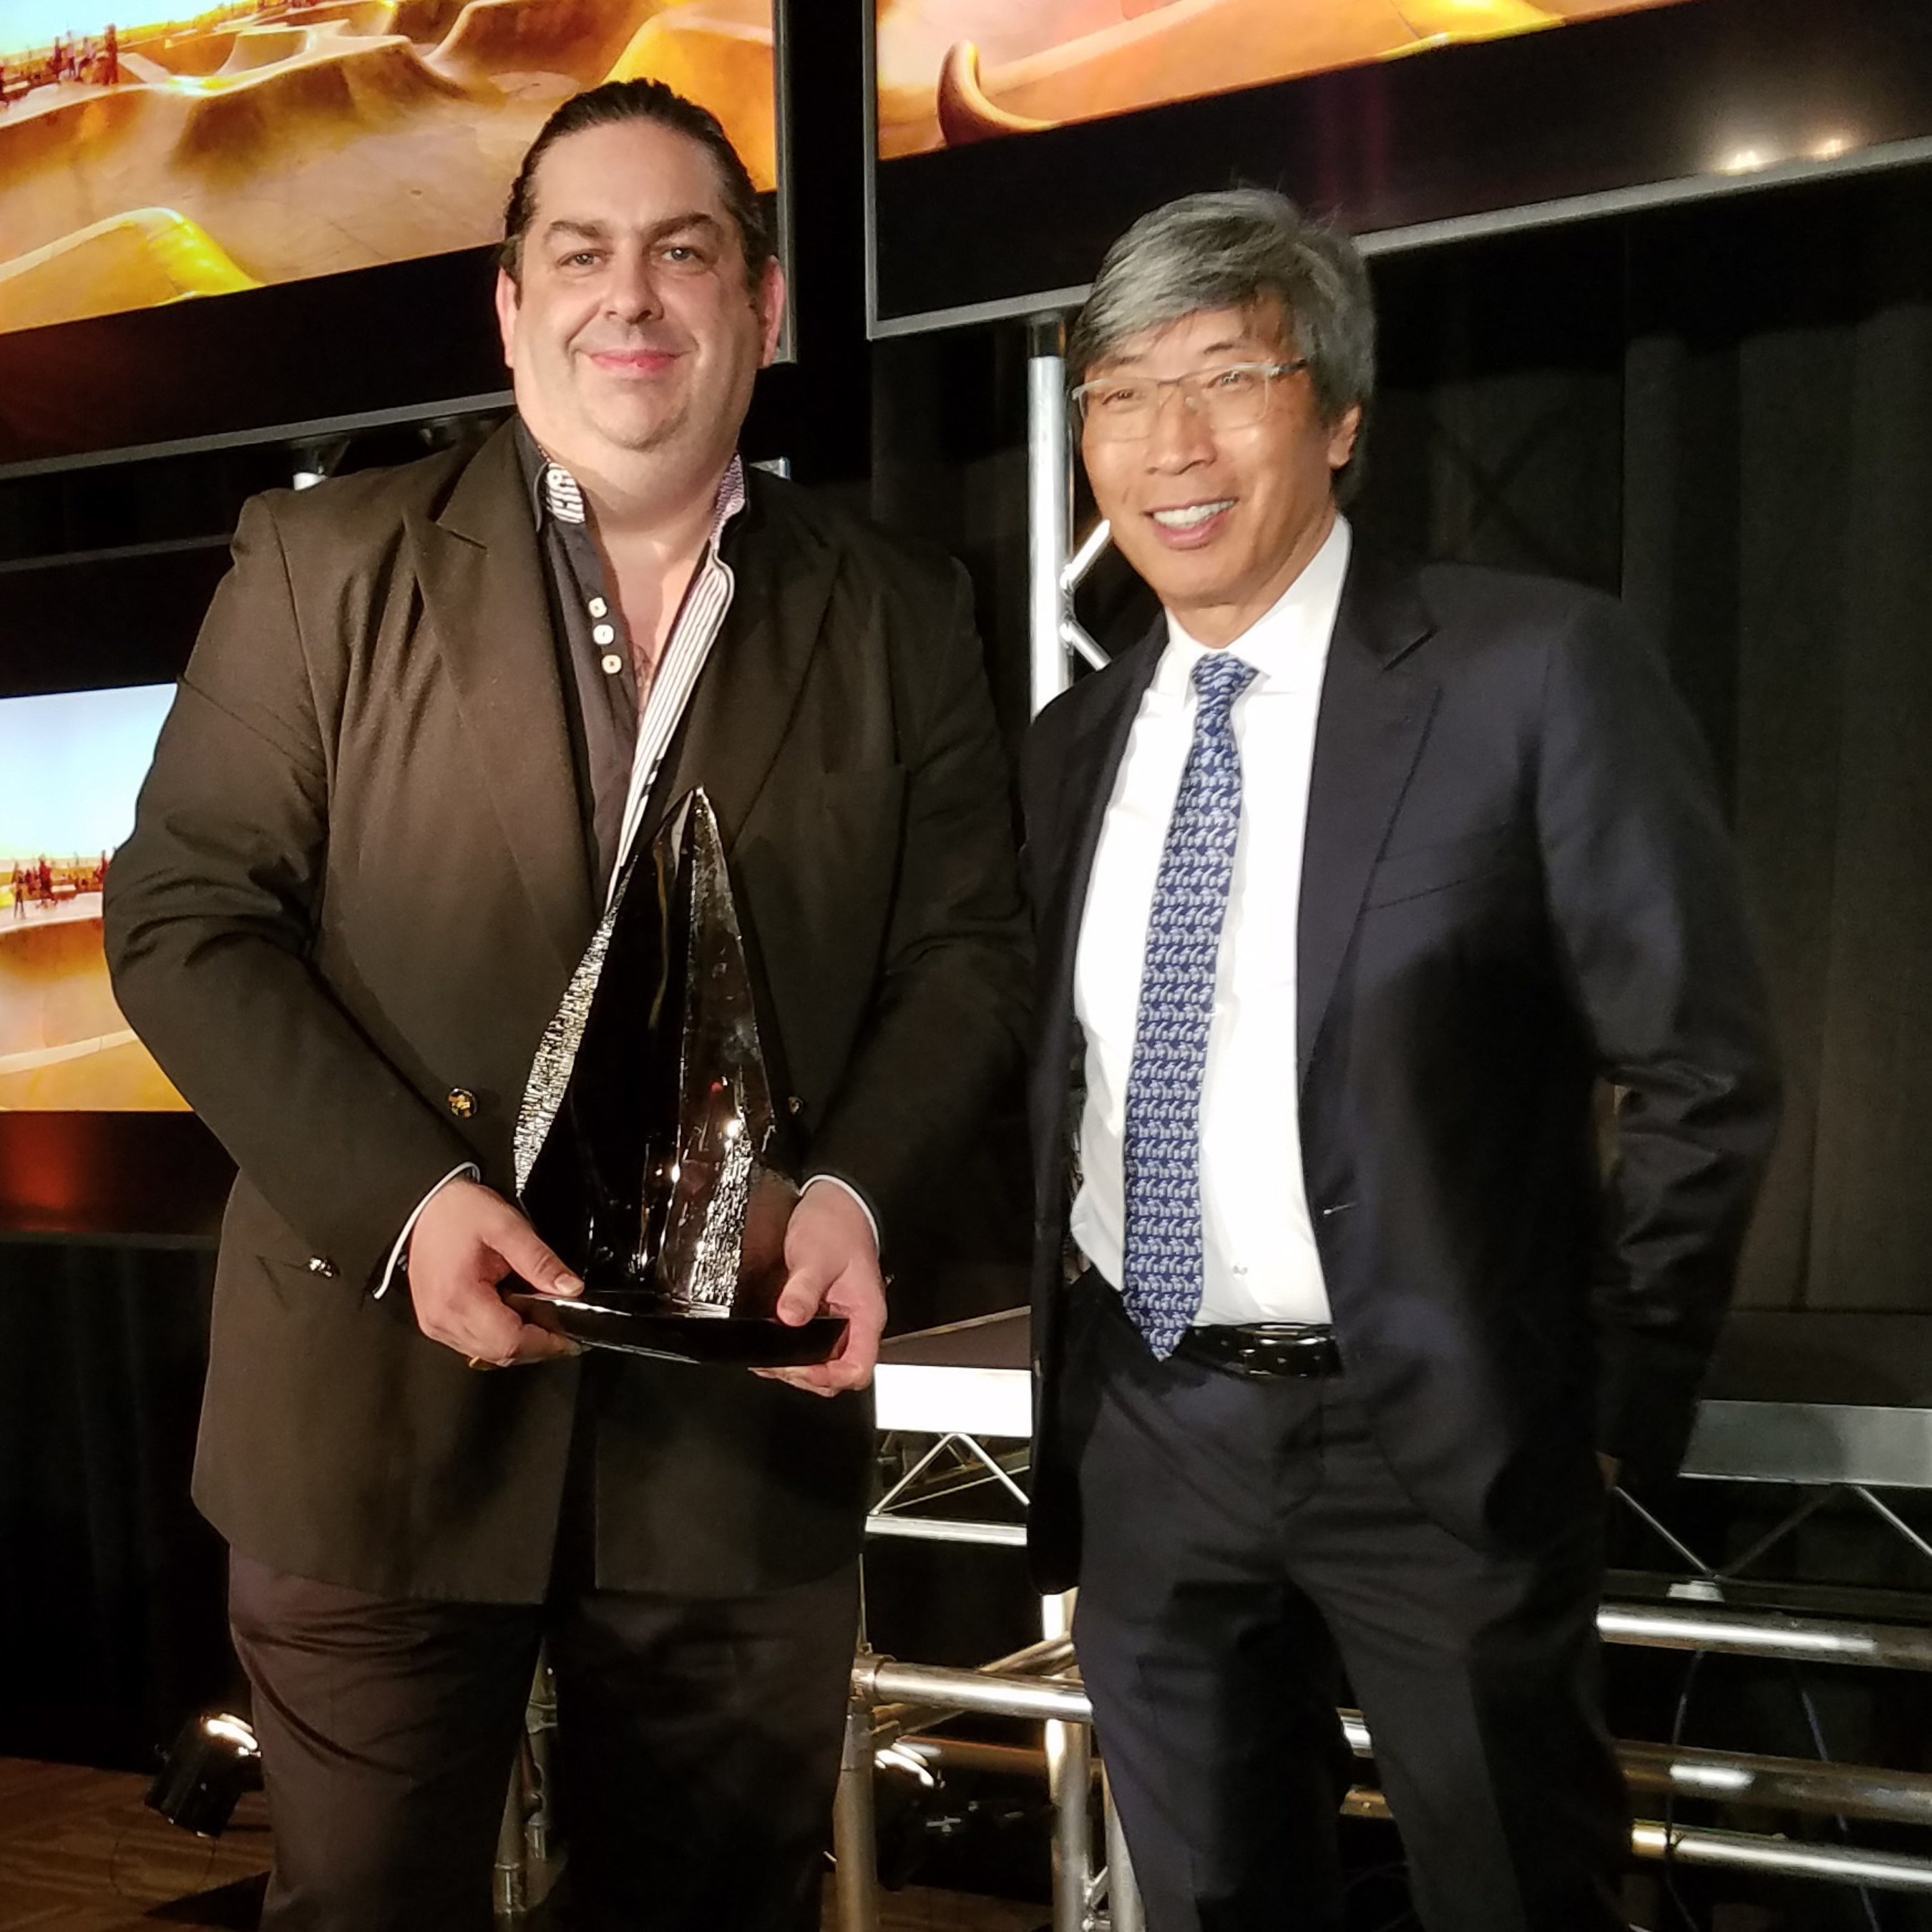 Scorpion Computer Services, Inc. CEO and founder Walter O'Brien with Dr. Patrick Soon-Shiong.